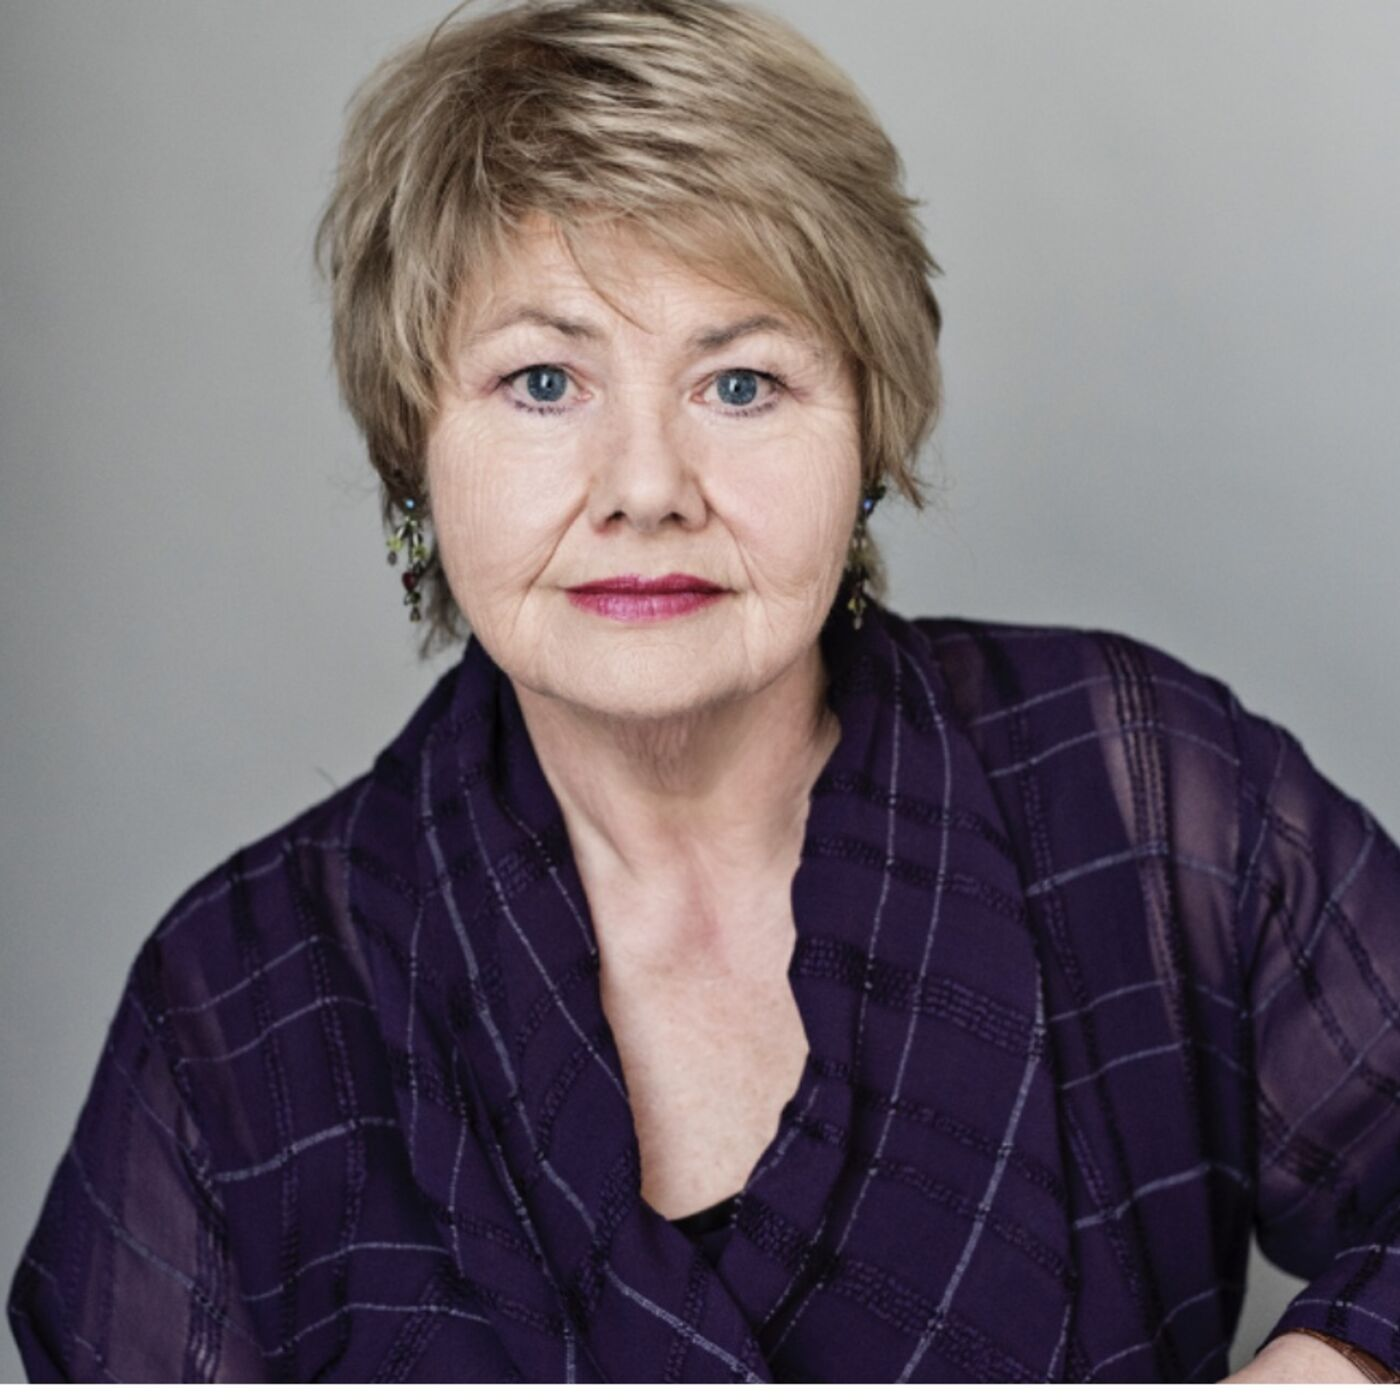 Playing Evil Aunt Babe - In Conversation with EastEnders' star Annette Badland